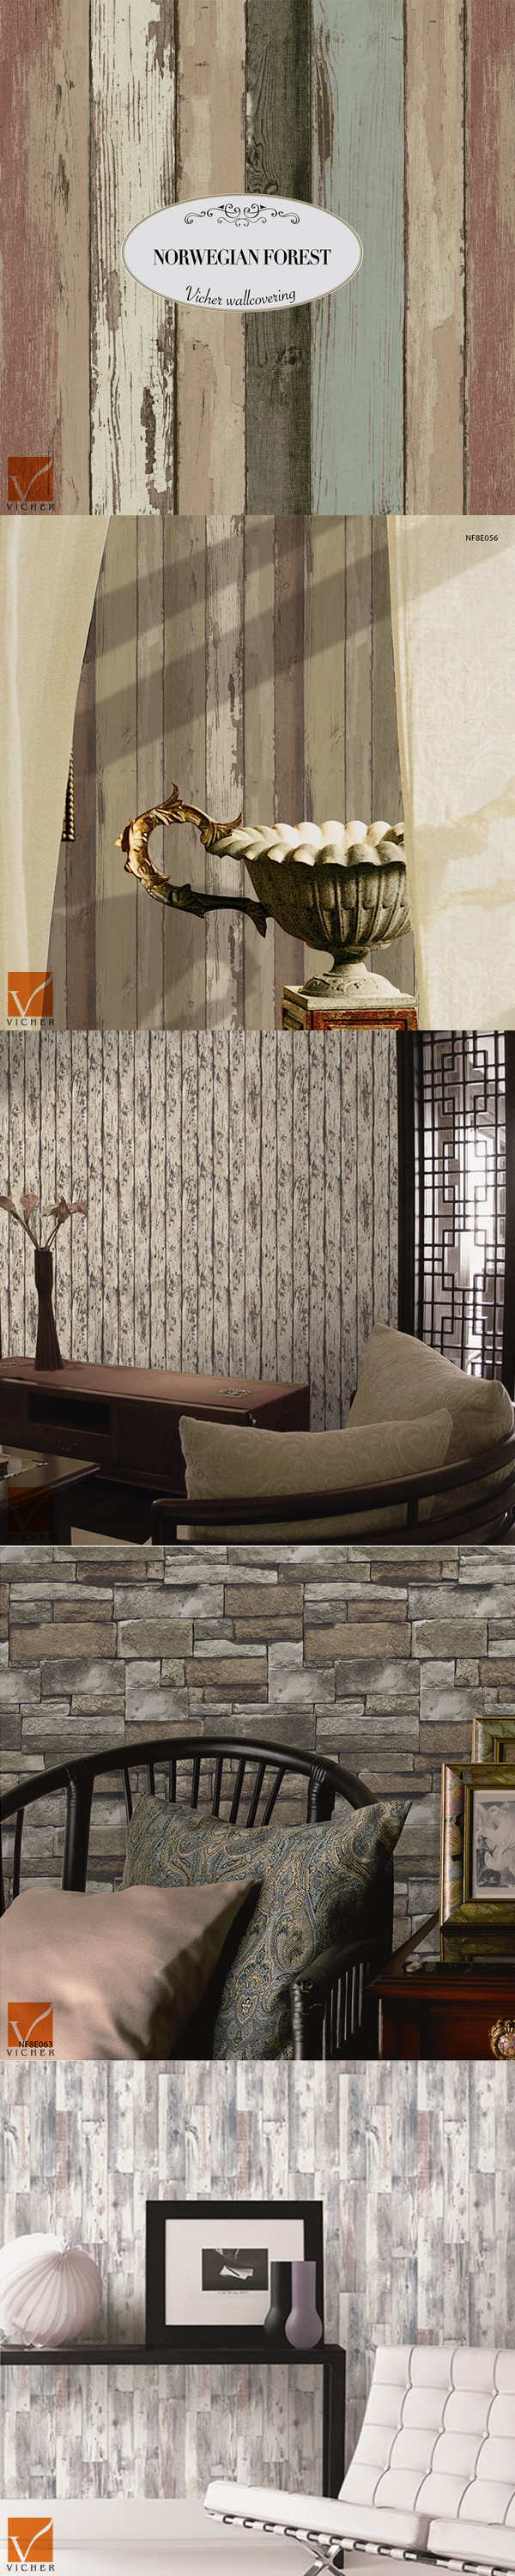 3d Batu Bata Alami Marmer Desain Wallpaper Buy 3d Wallpaper Batu Batu Alam Wallpaper Marbel Wallpaper Product On Alibaba